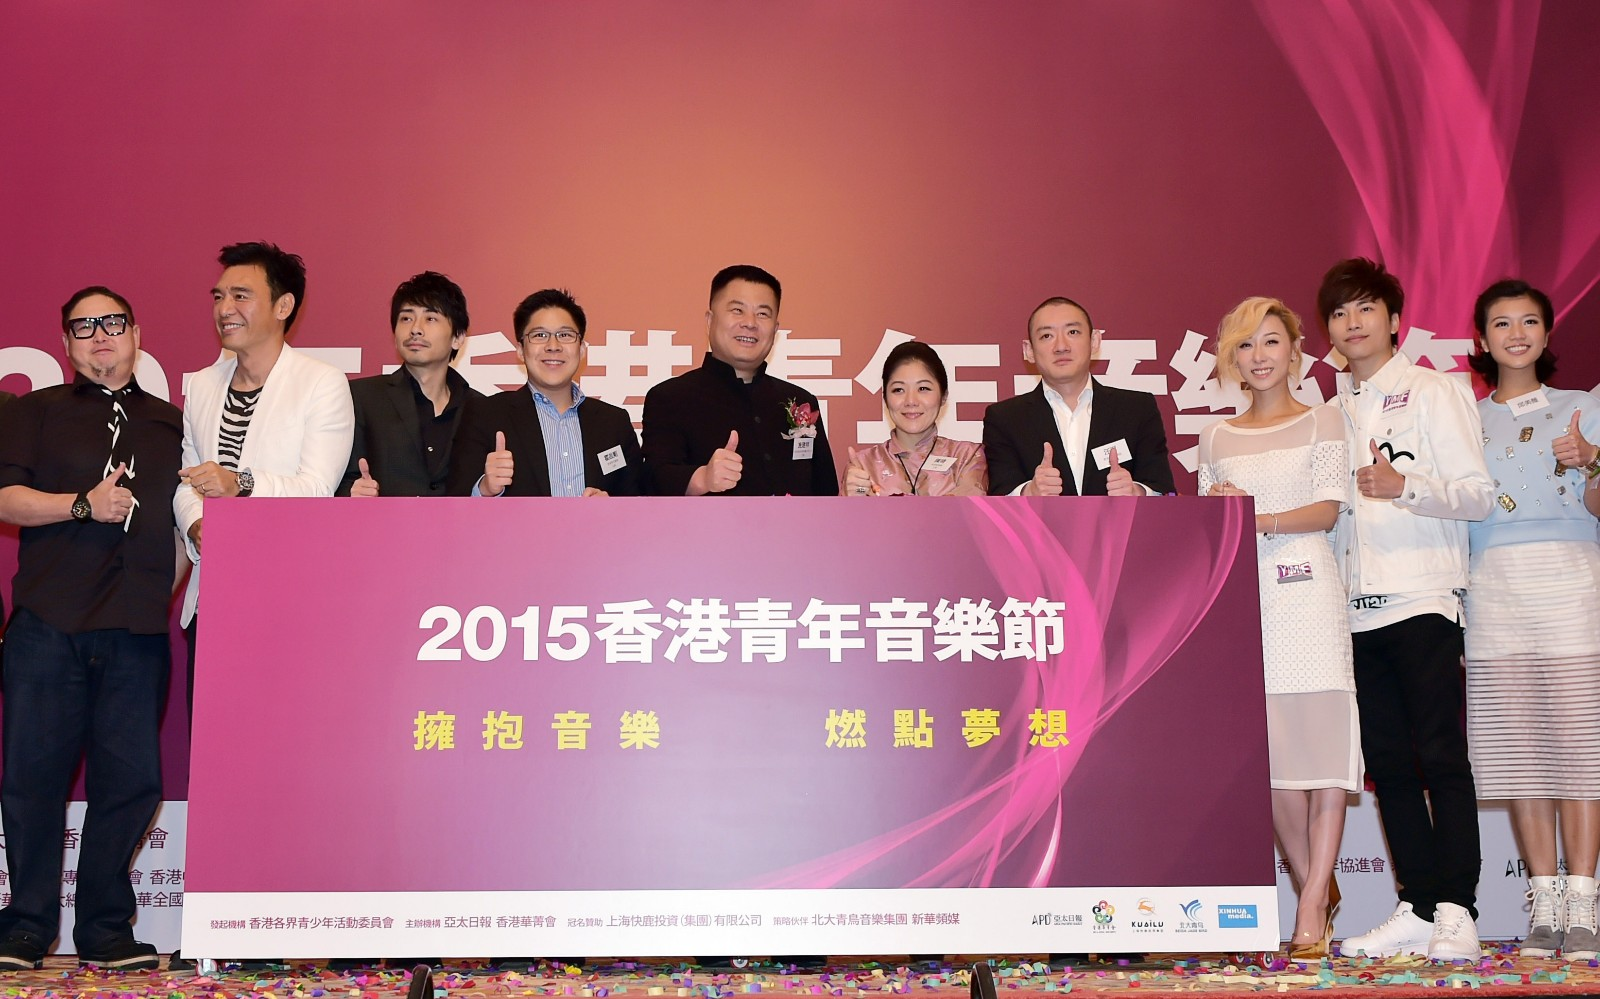 2015 Hong Kong Youth Music Festival to kick off next month